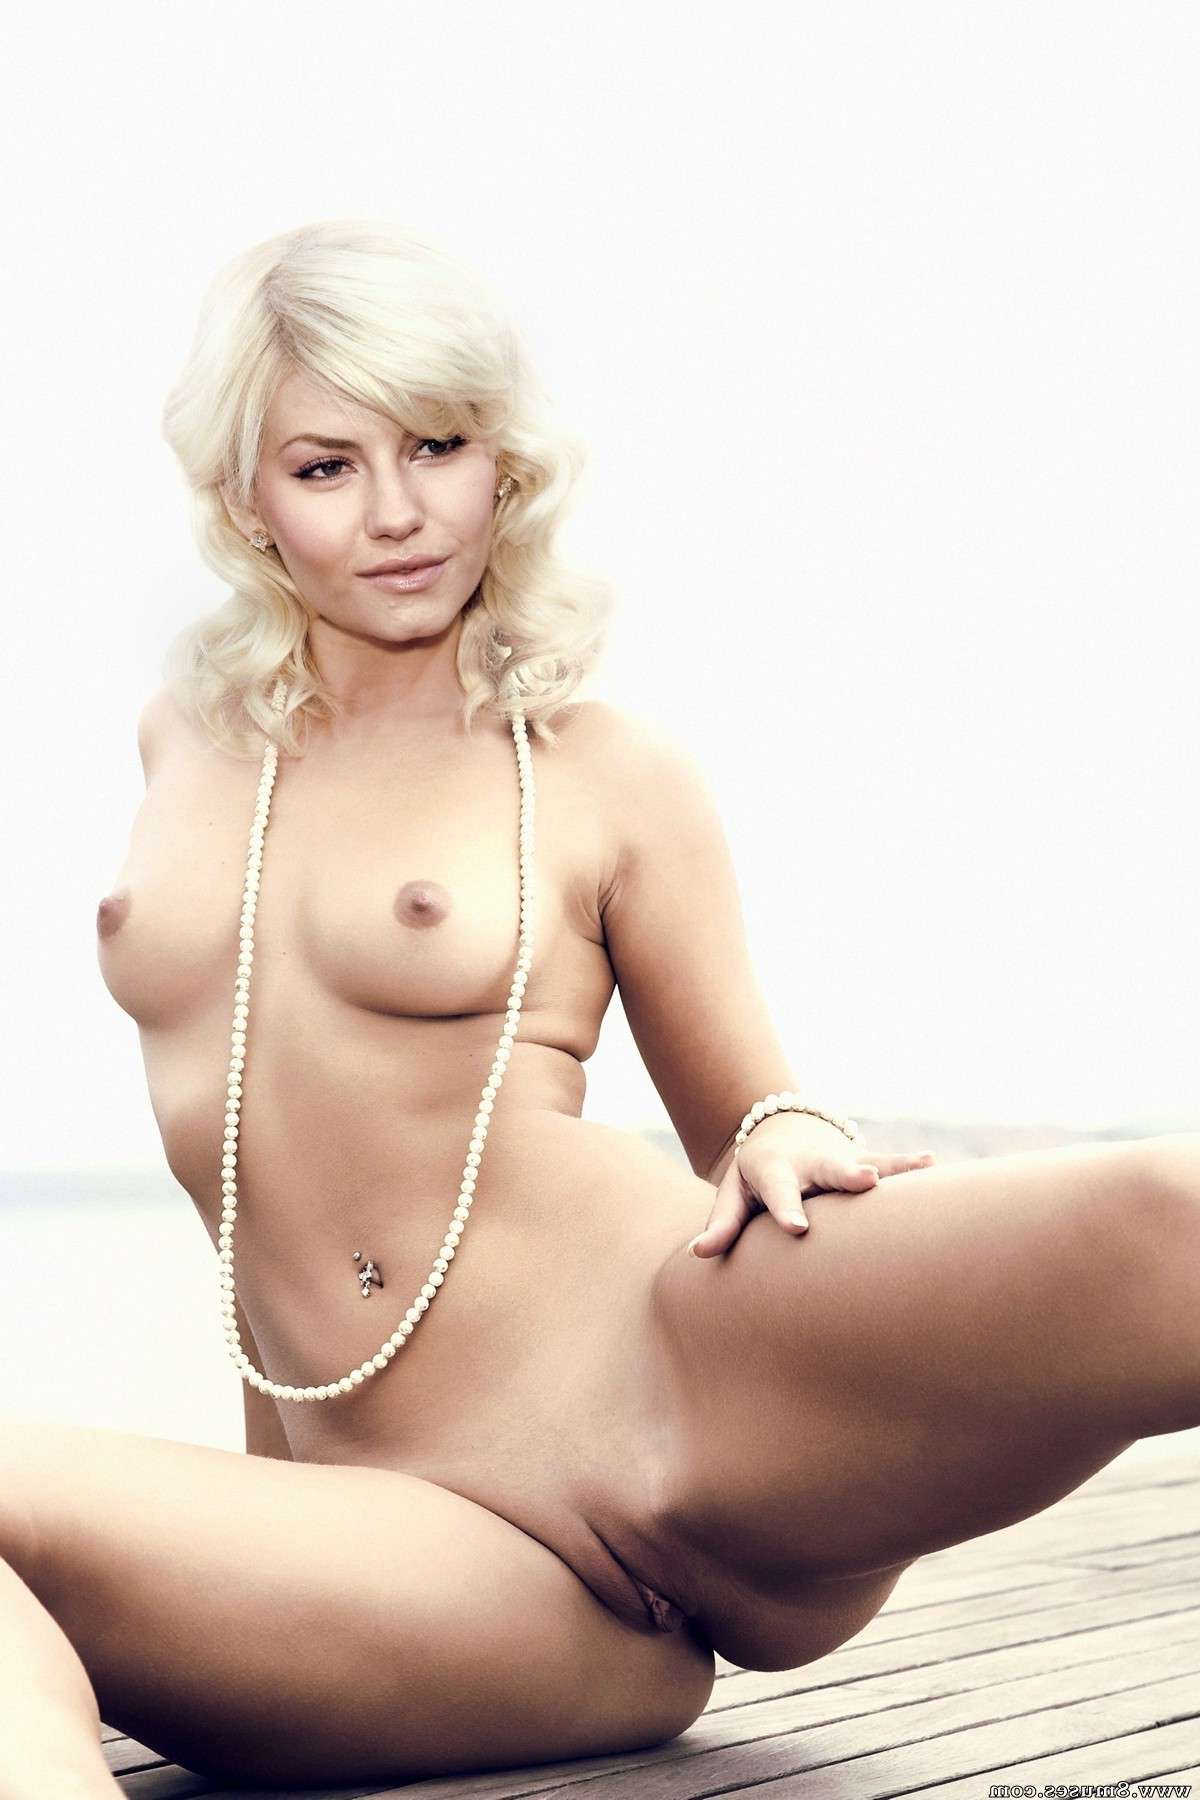 Fake-Celebrities-Sex-Pictures/Elisha-Cuthbert Elisha_Cuthbert__8muses_-_Sex_and_Porn_Comics_279.jpg